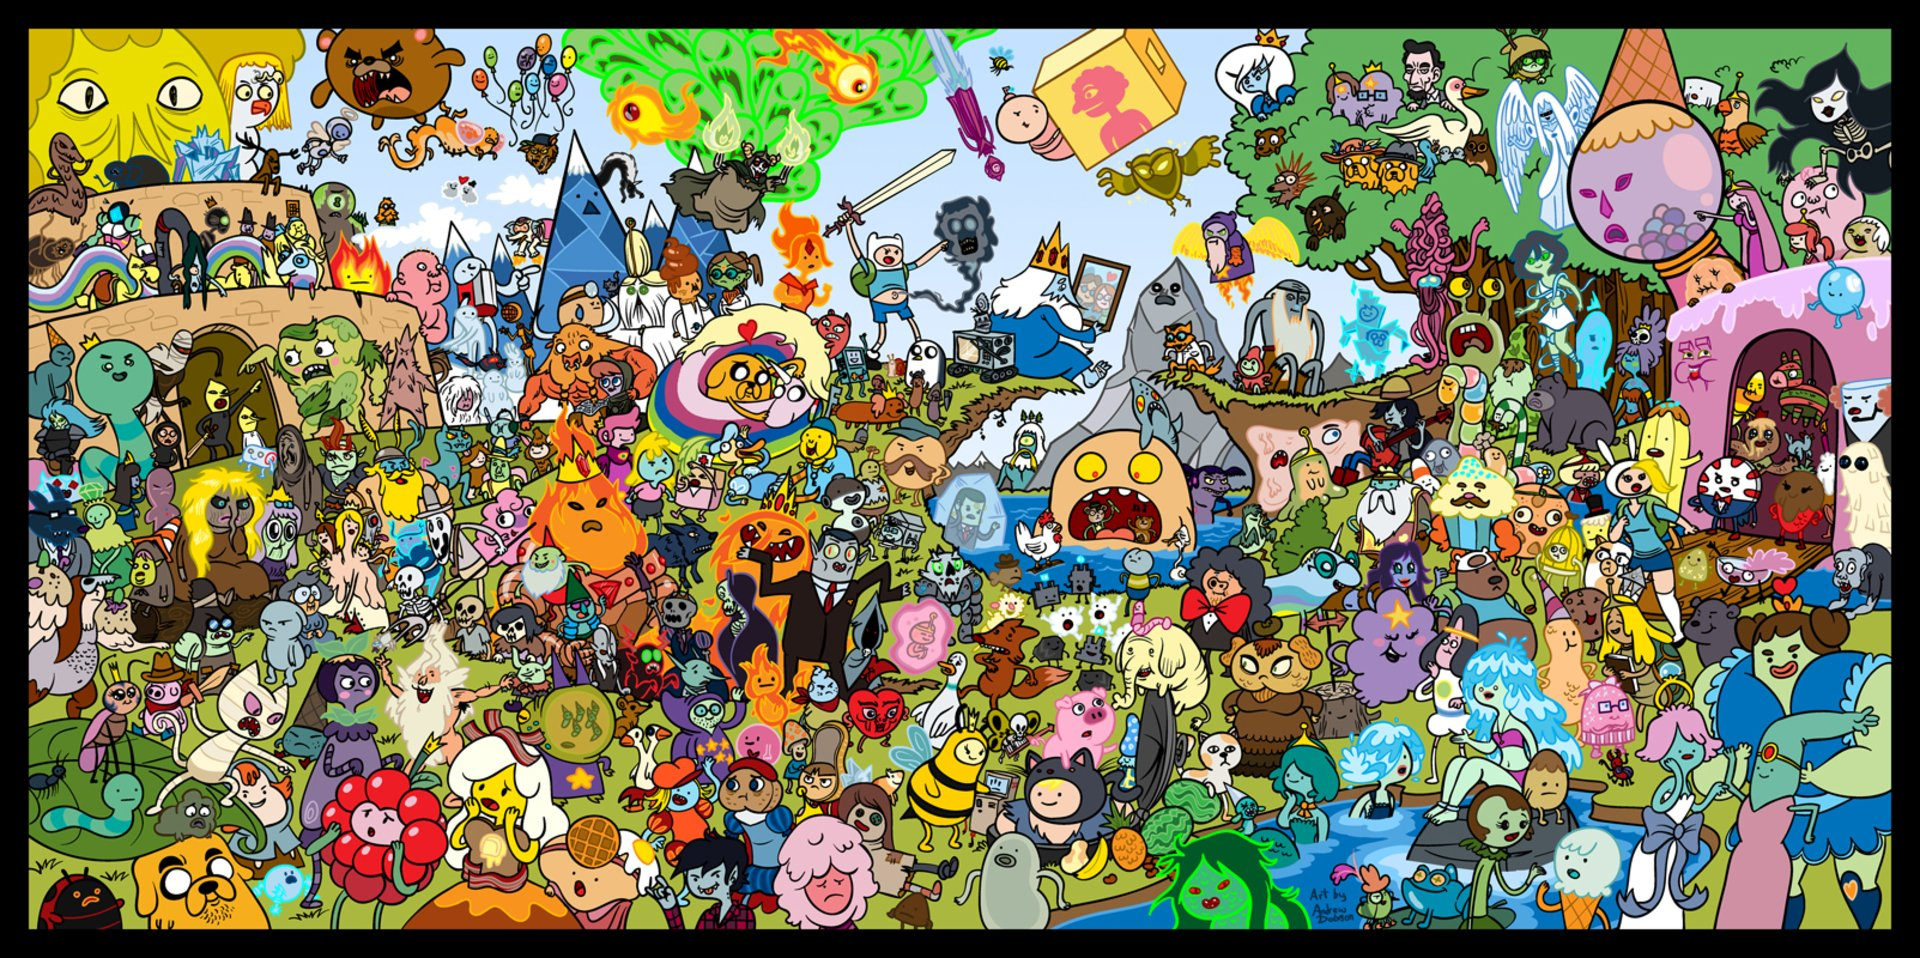 341 adventure time hd wallpapers | background images - wallpaper abyss